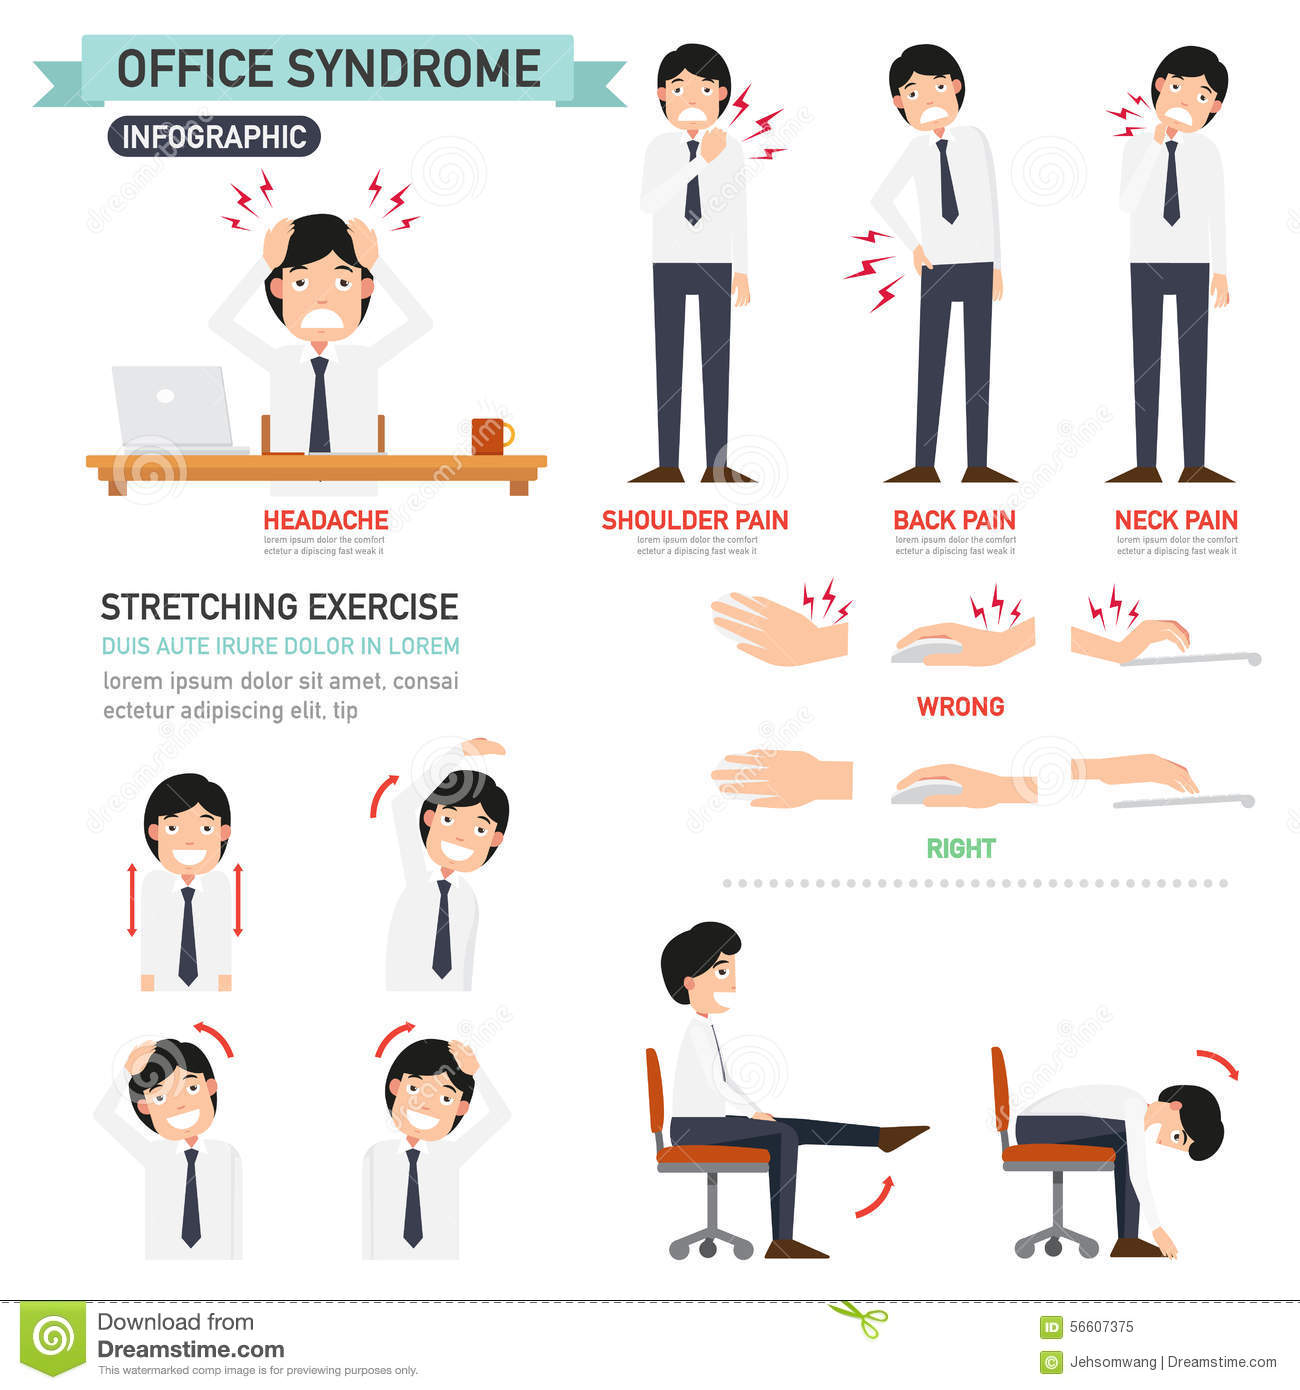 office chair exercises and a half ikea syndrome infographic stock vector - image: 56607375